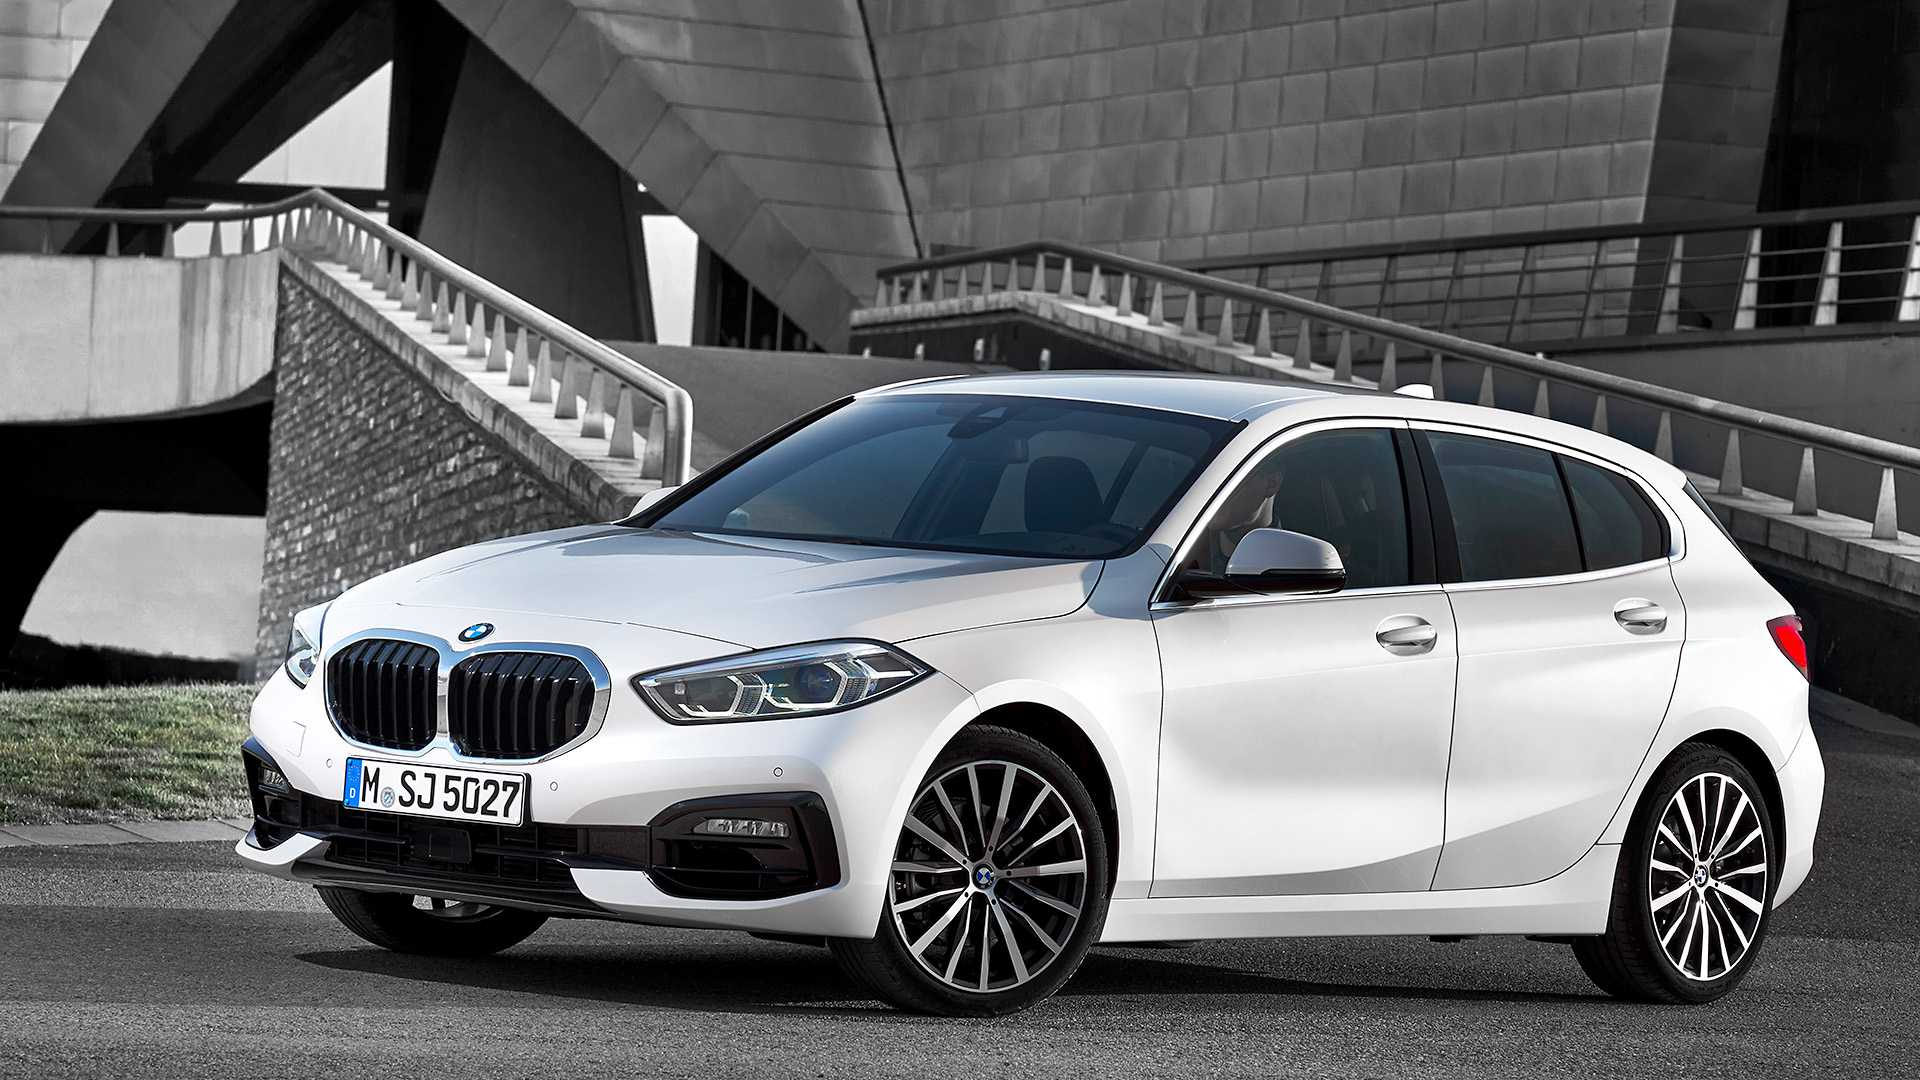 2020 BMW 1-Series 118i (Color: Mineral white Metallic) Front Three-Quarter Wallpapers (7)